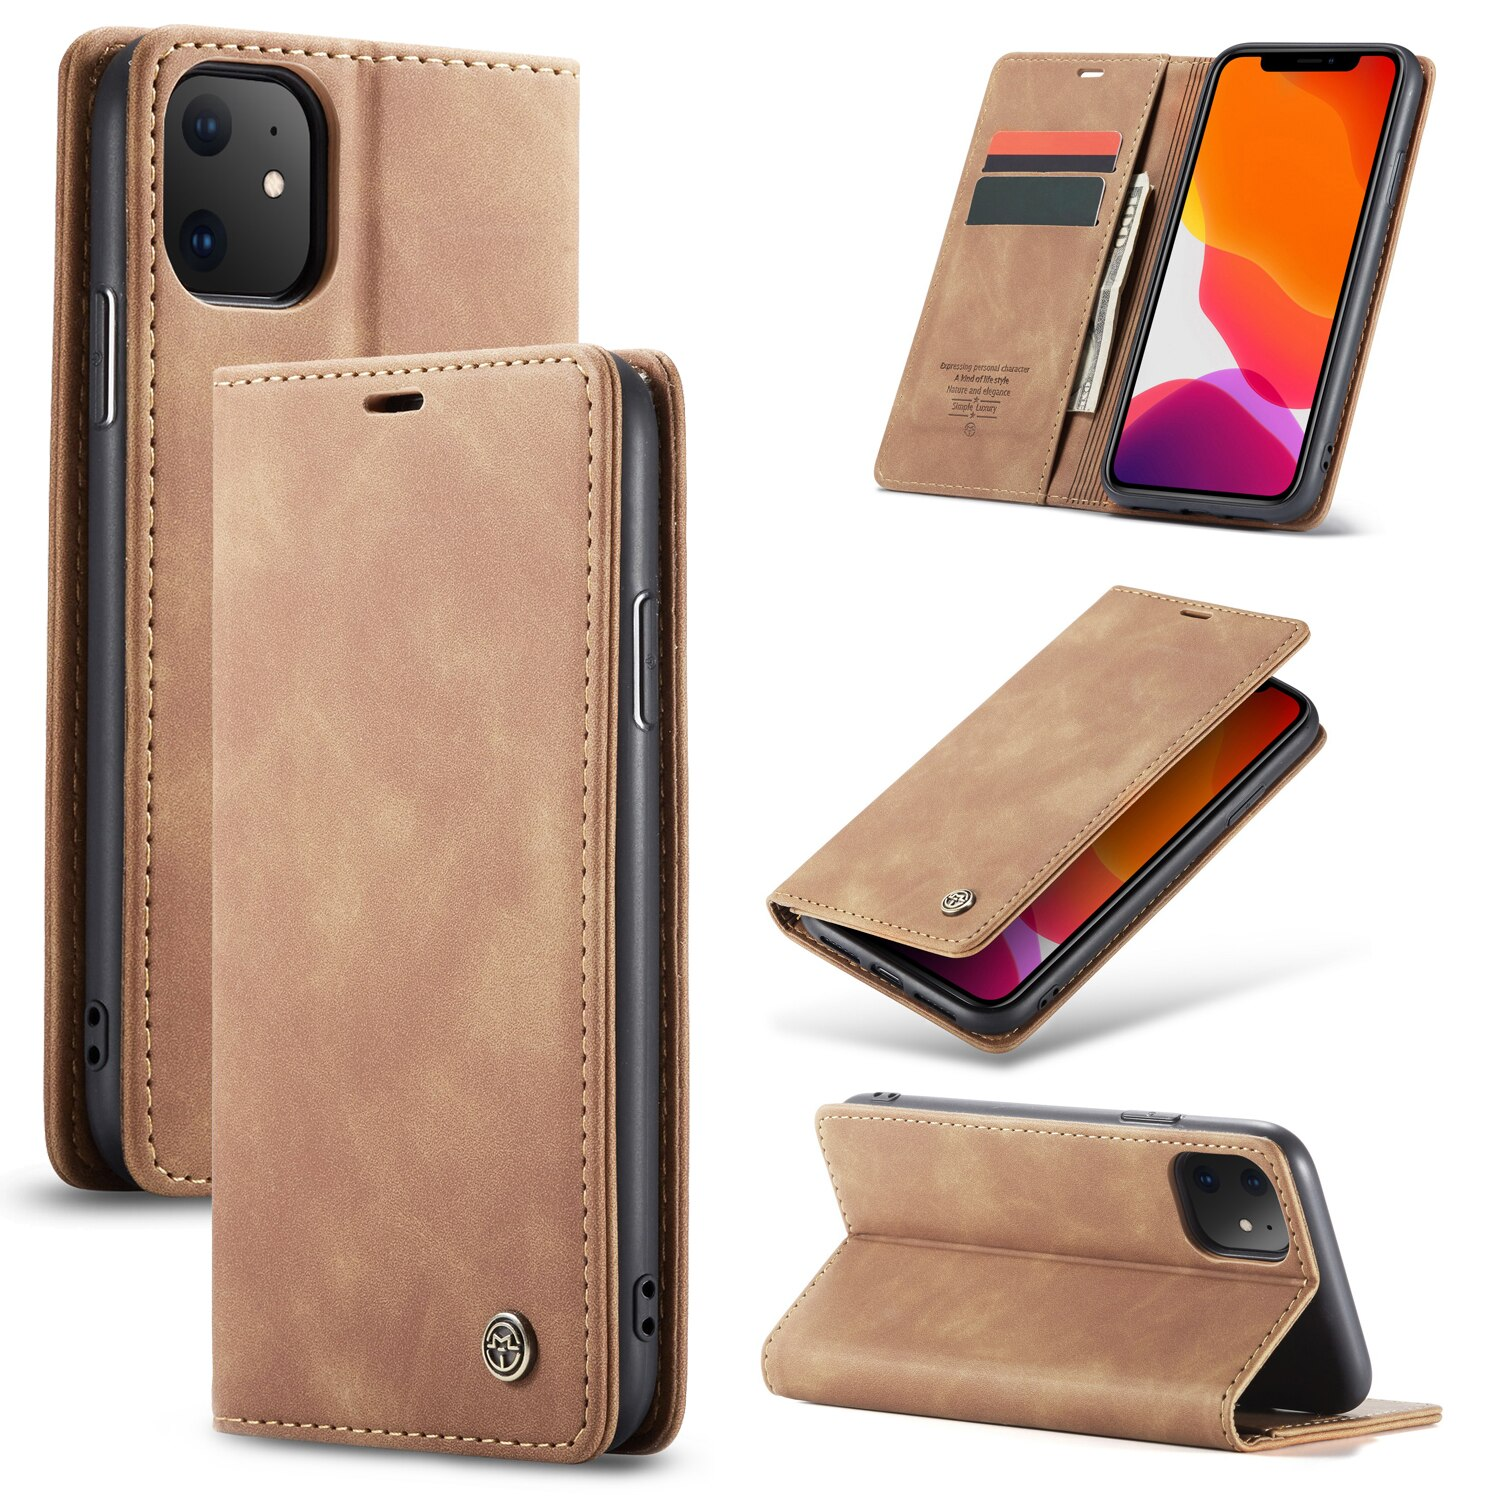 Leather Wallet Phone Case for iPhone 11 / 11 Pro / 11 Pro Max